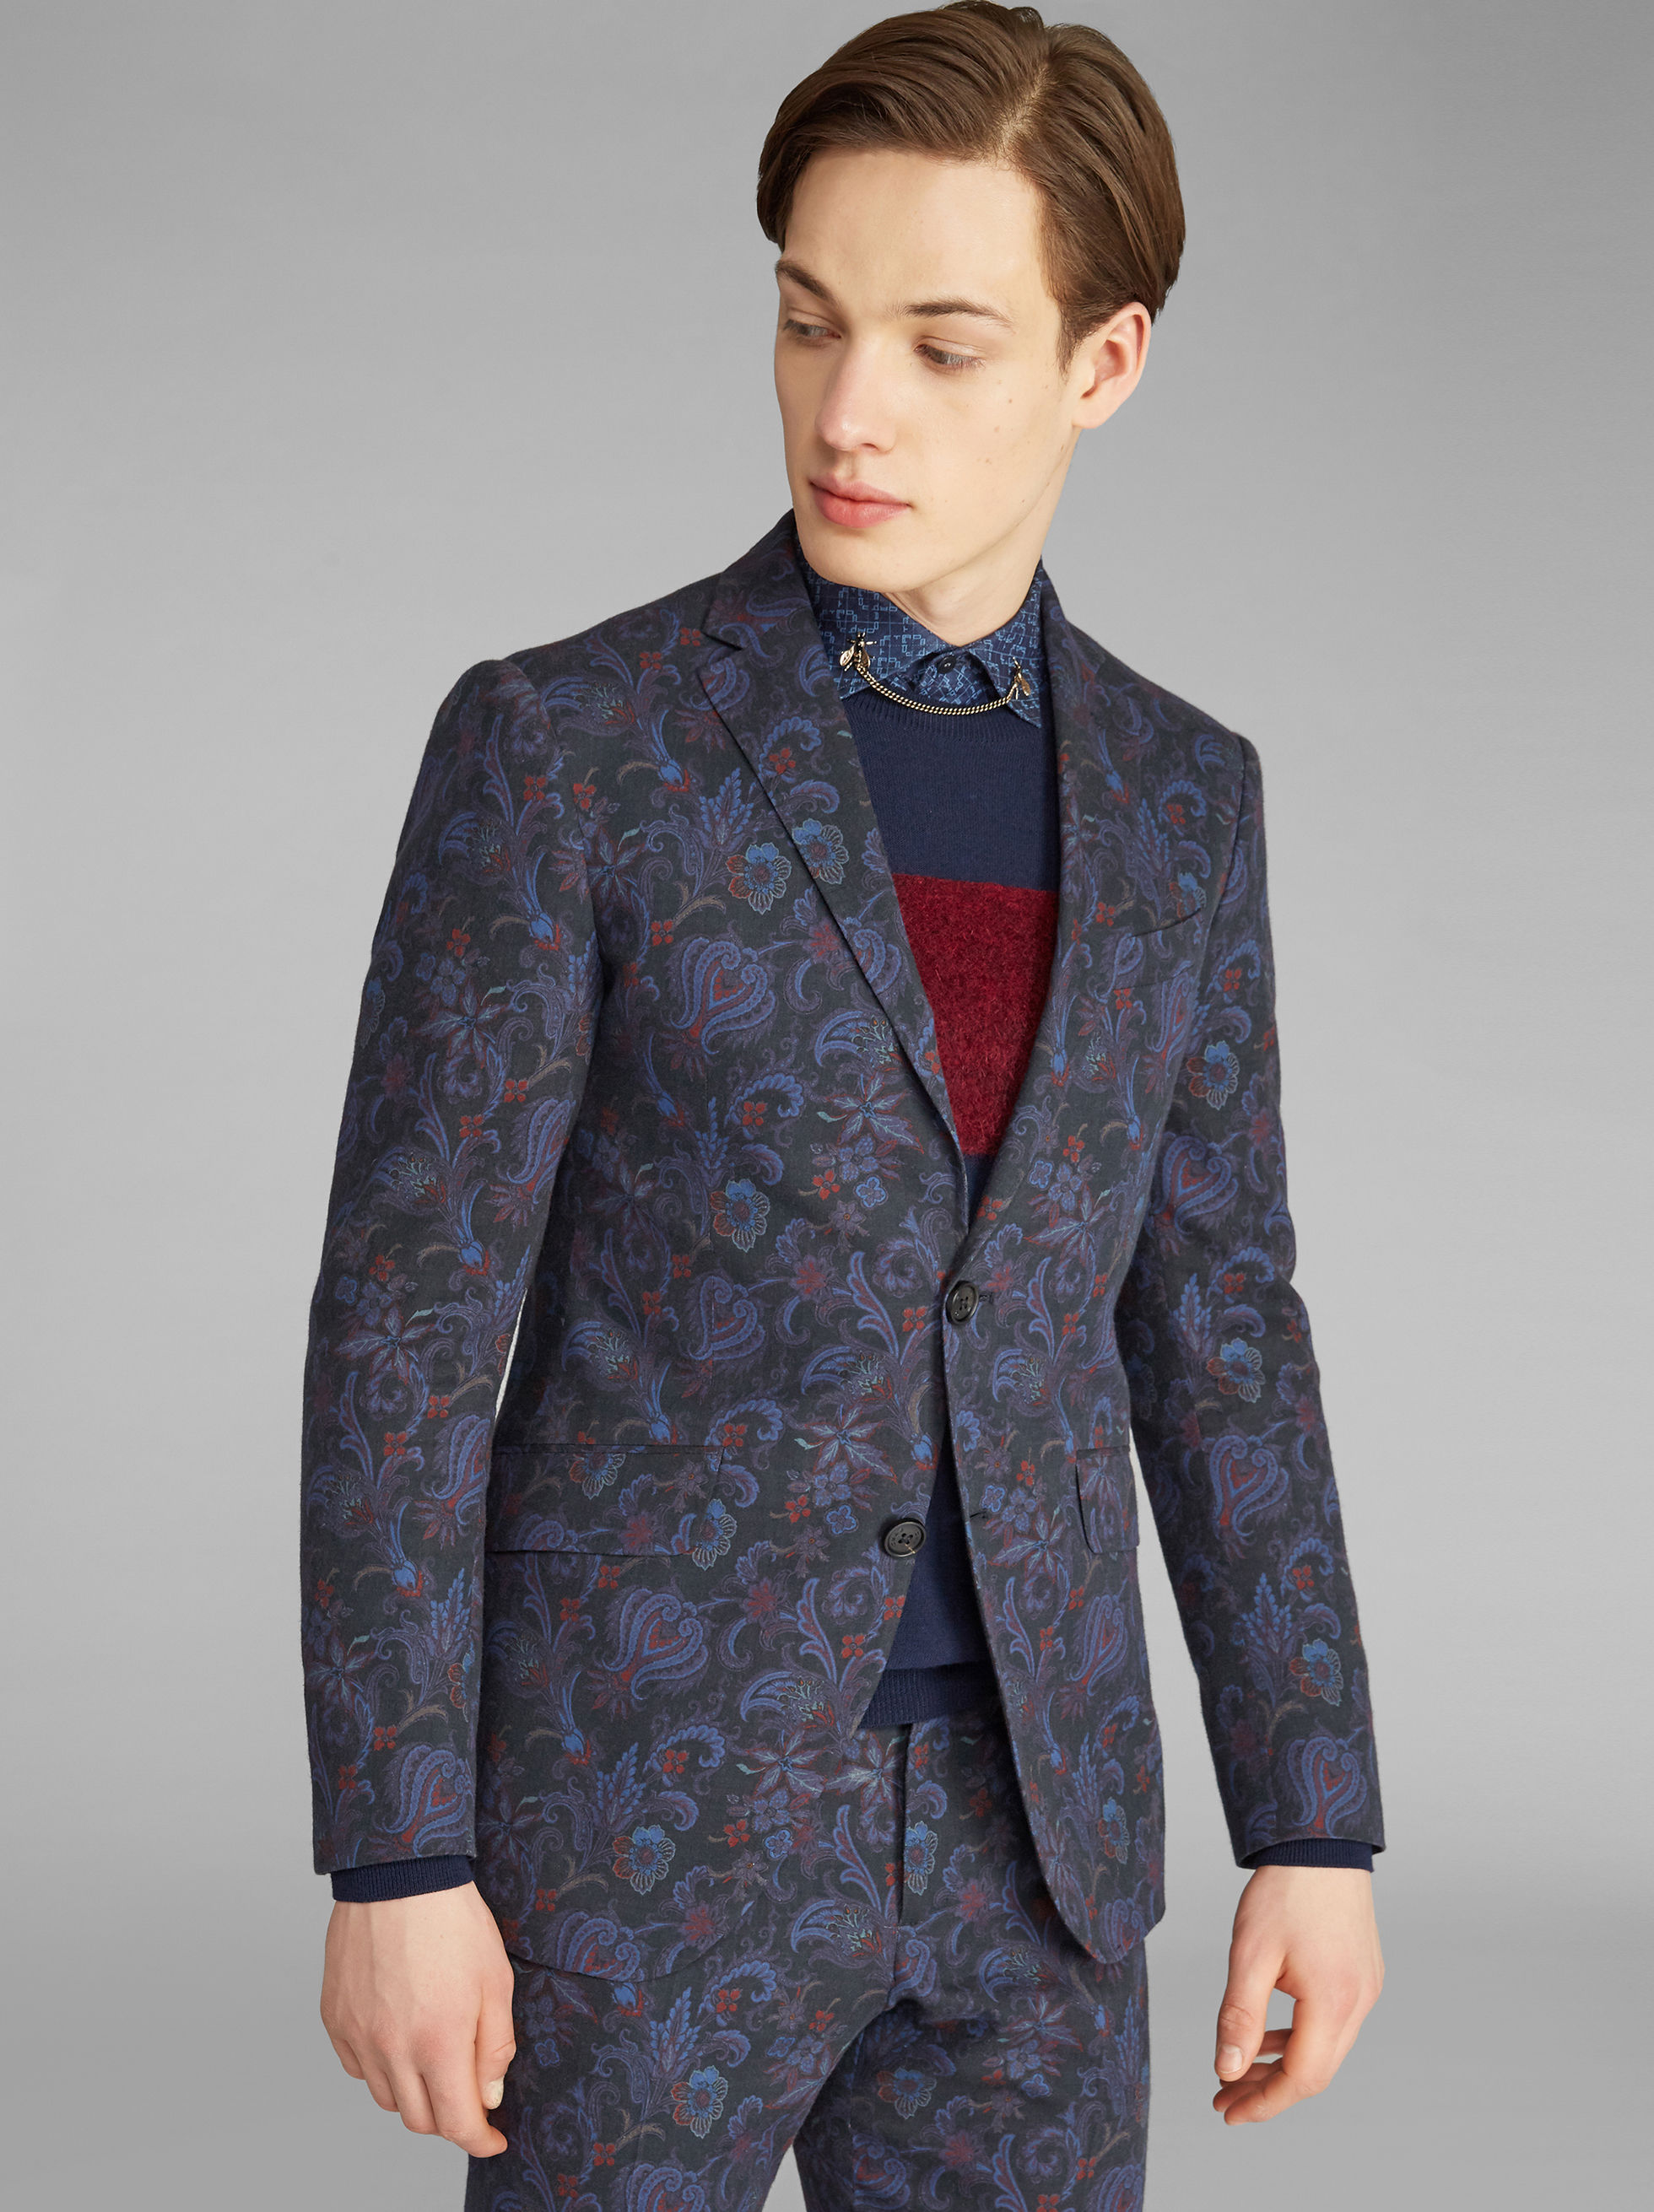 SUPERLEGGERA FLORAL-PRINT JACKET